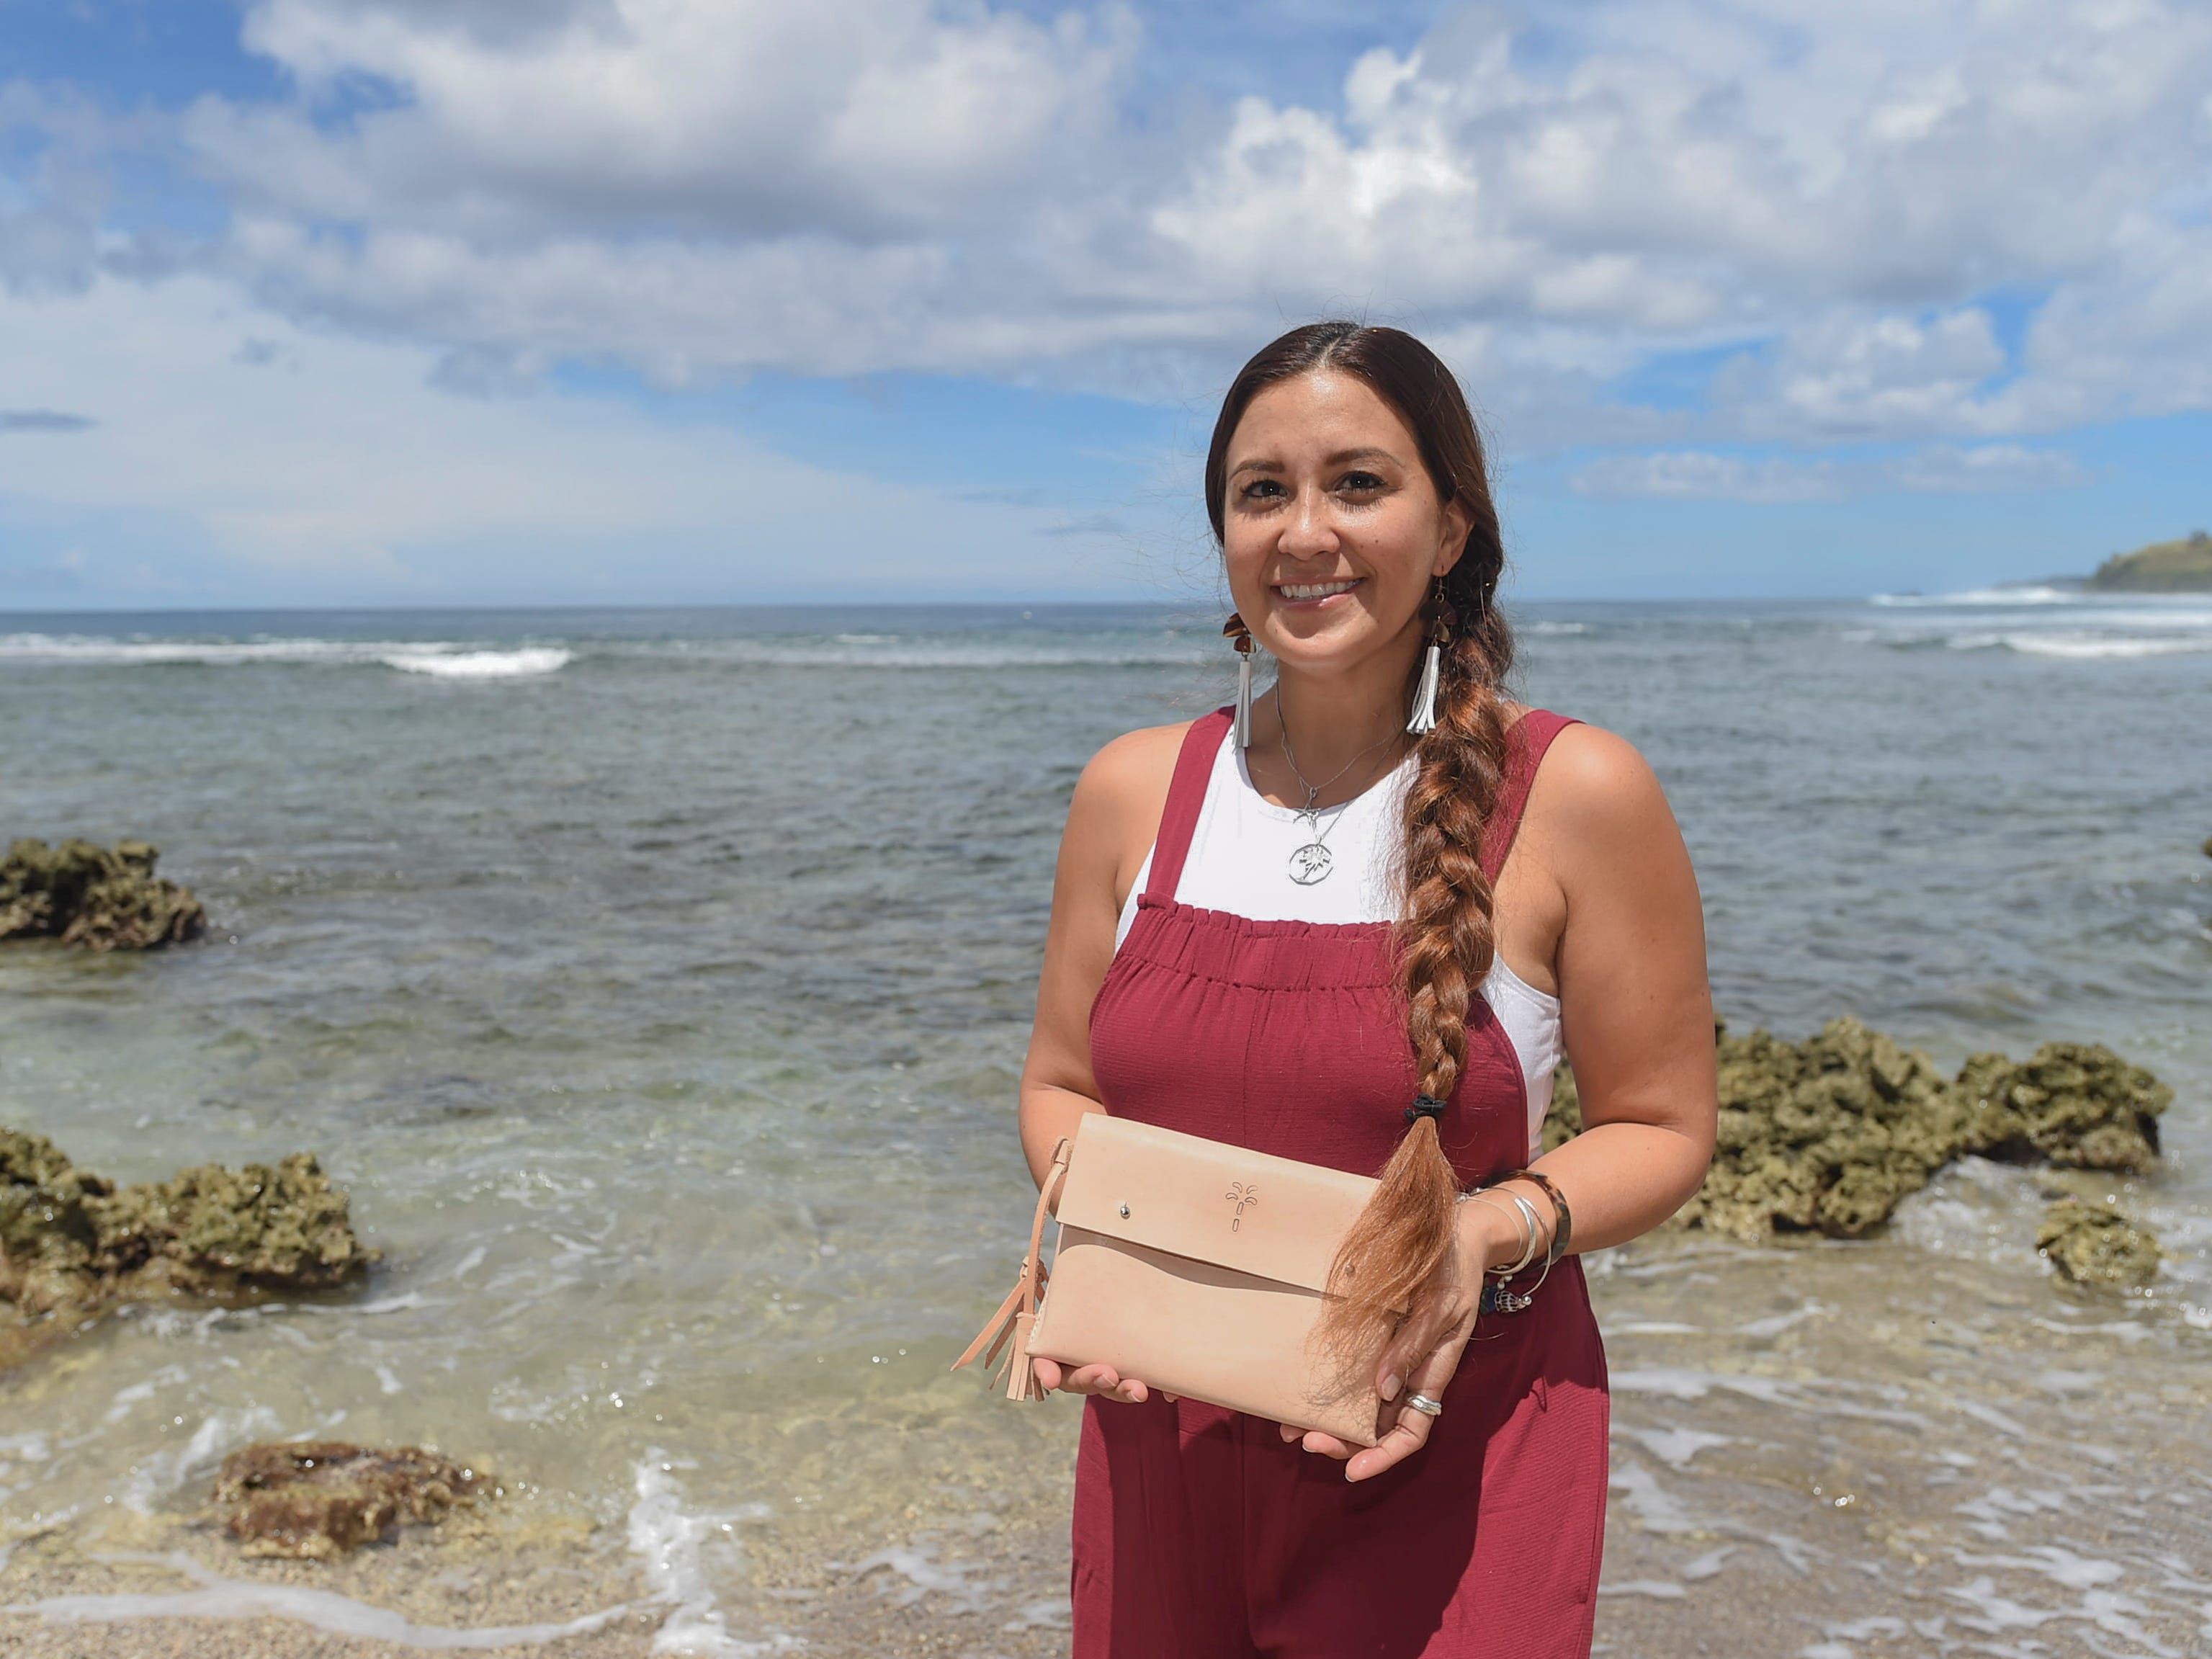 The Blue Latitude owner Abby Crain displays her handcrafted leather clutch in Merizo on Oct. 2, 2018.